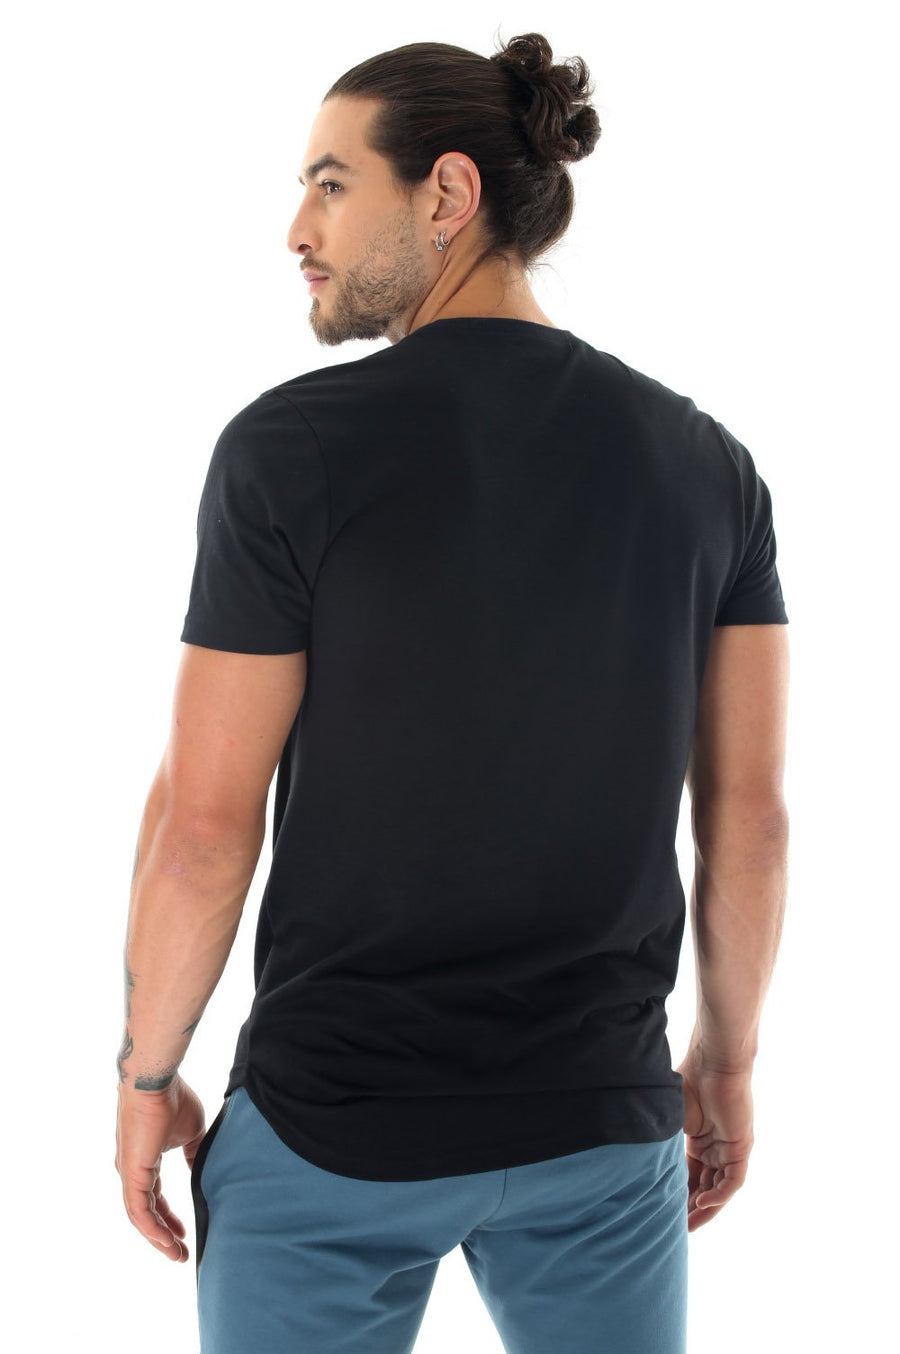 Camiseta At home-Hombre